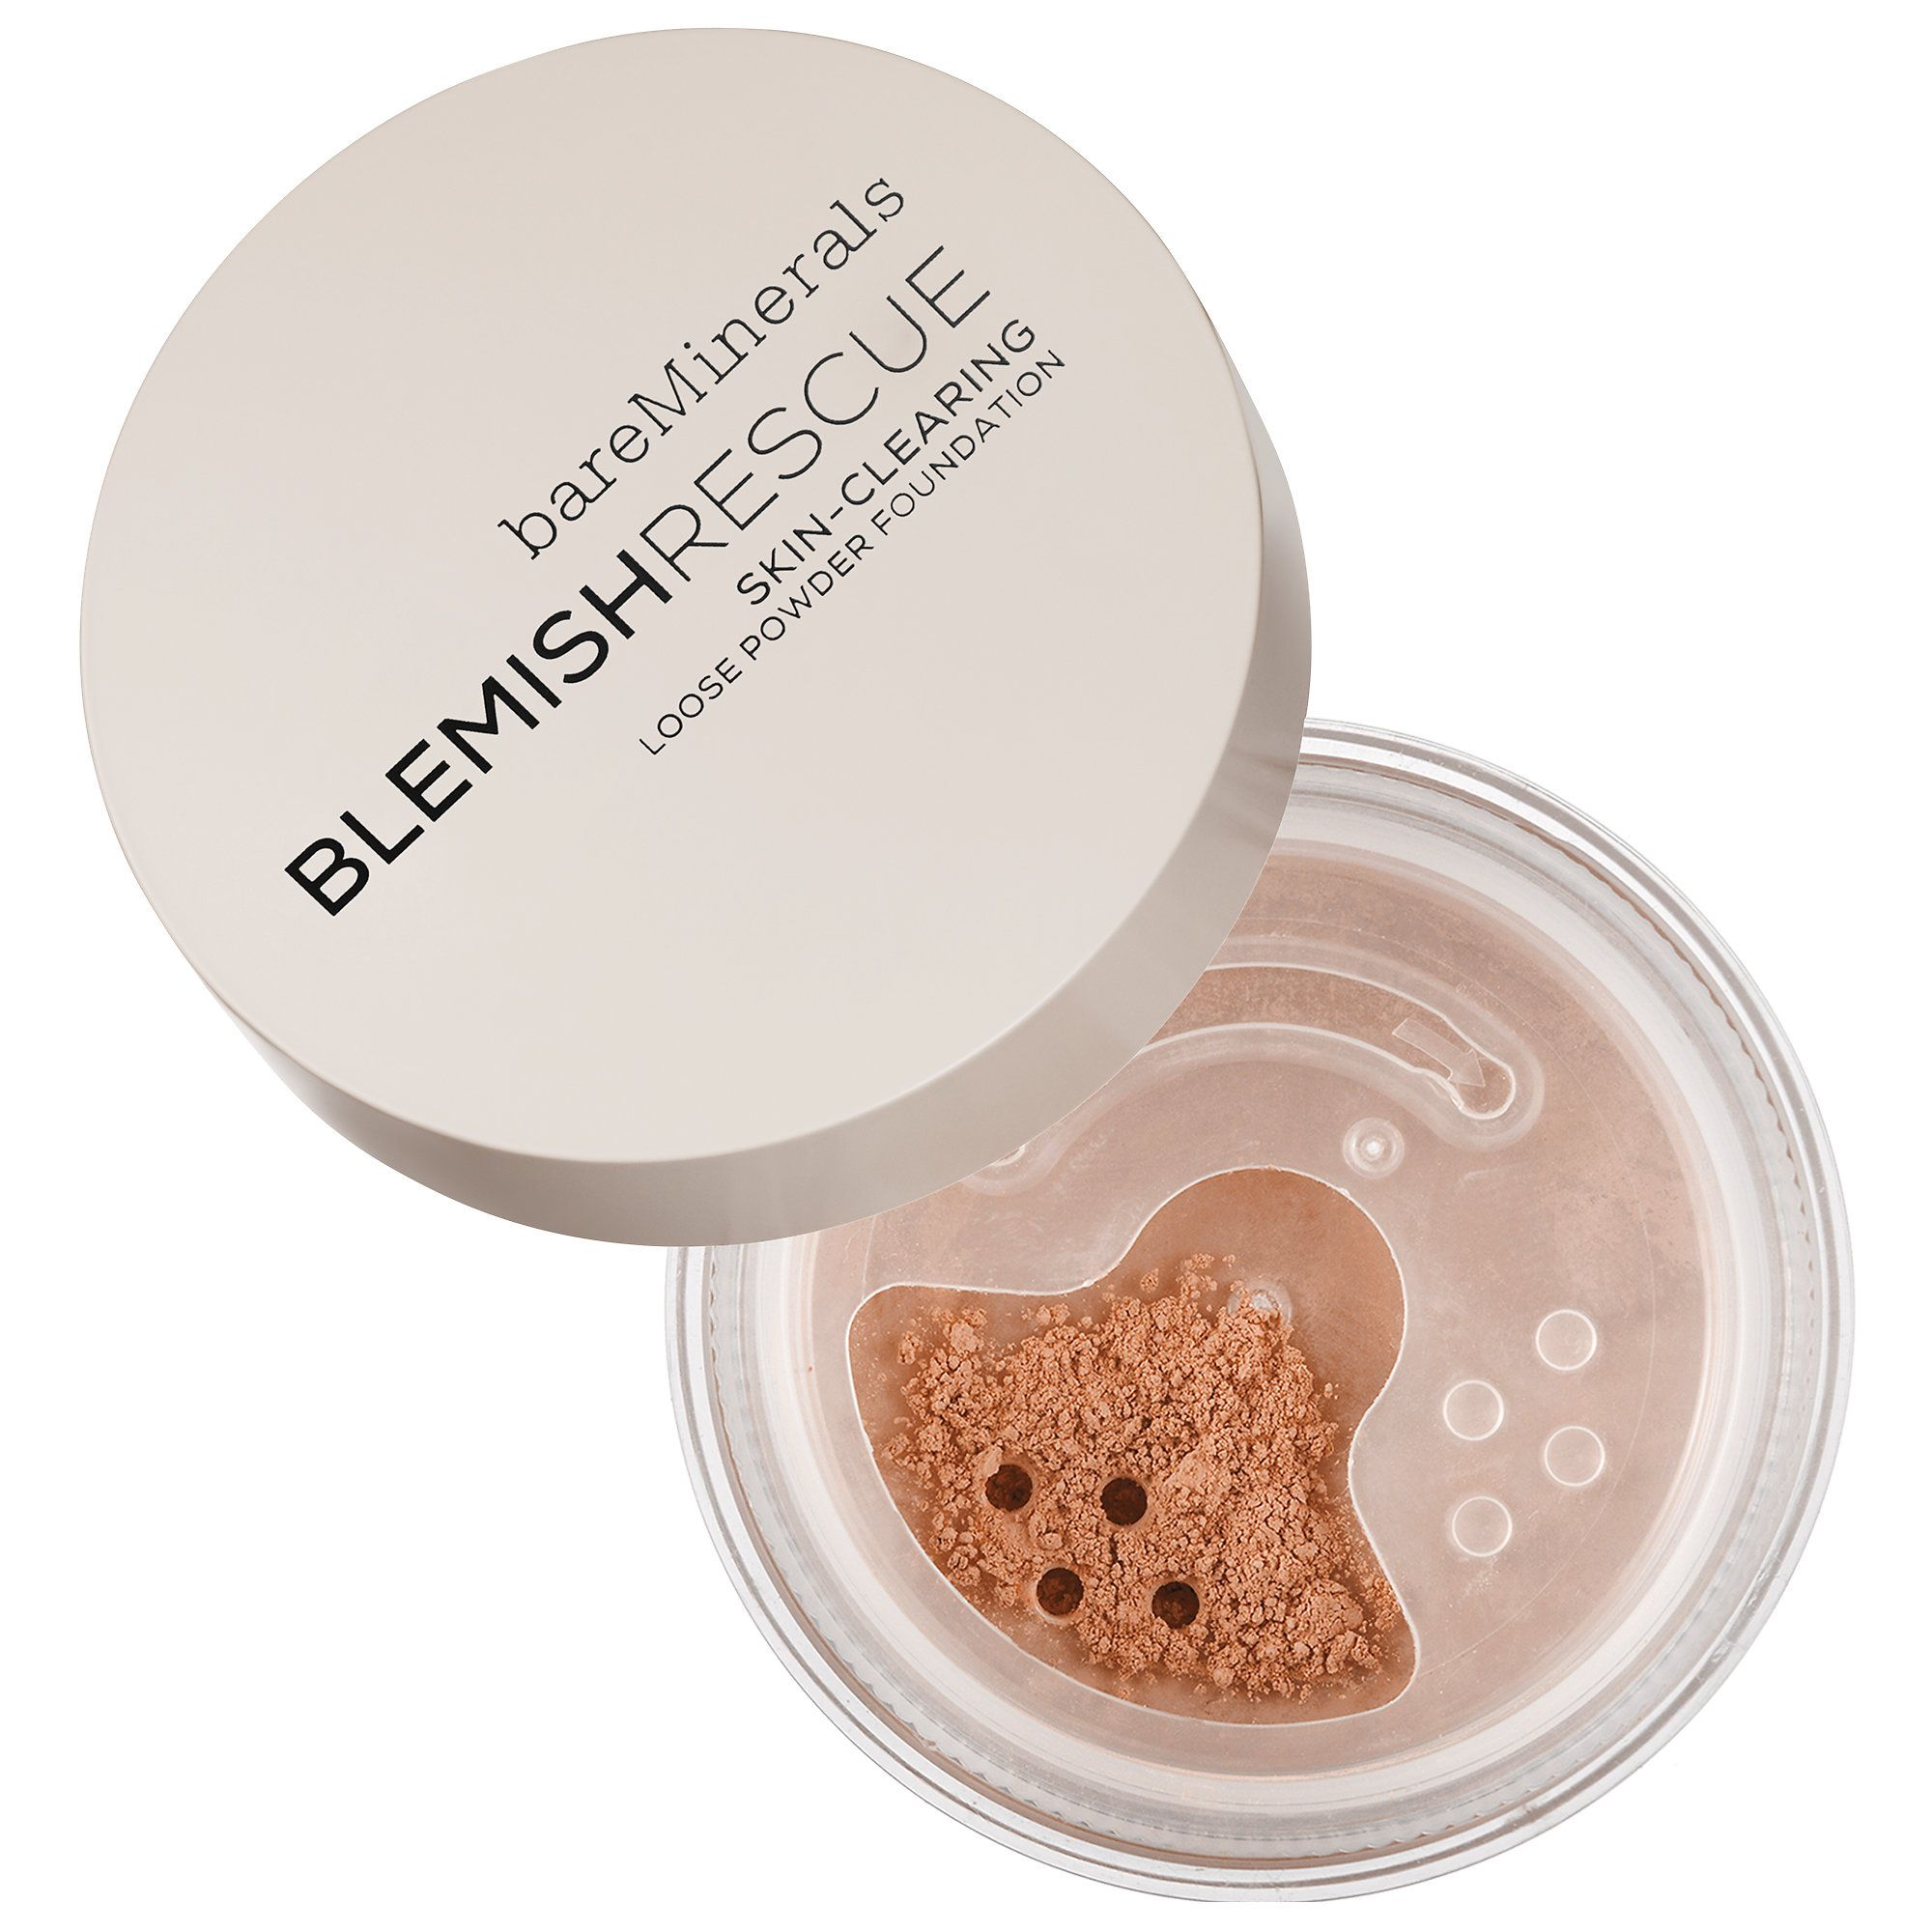 15 Best Foundations For Acne Prone Skin How To Cover Up Acne